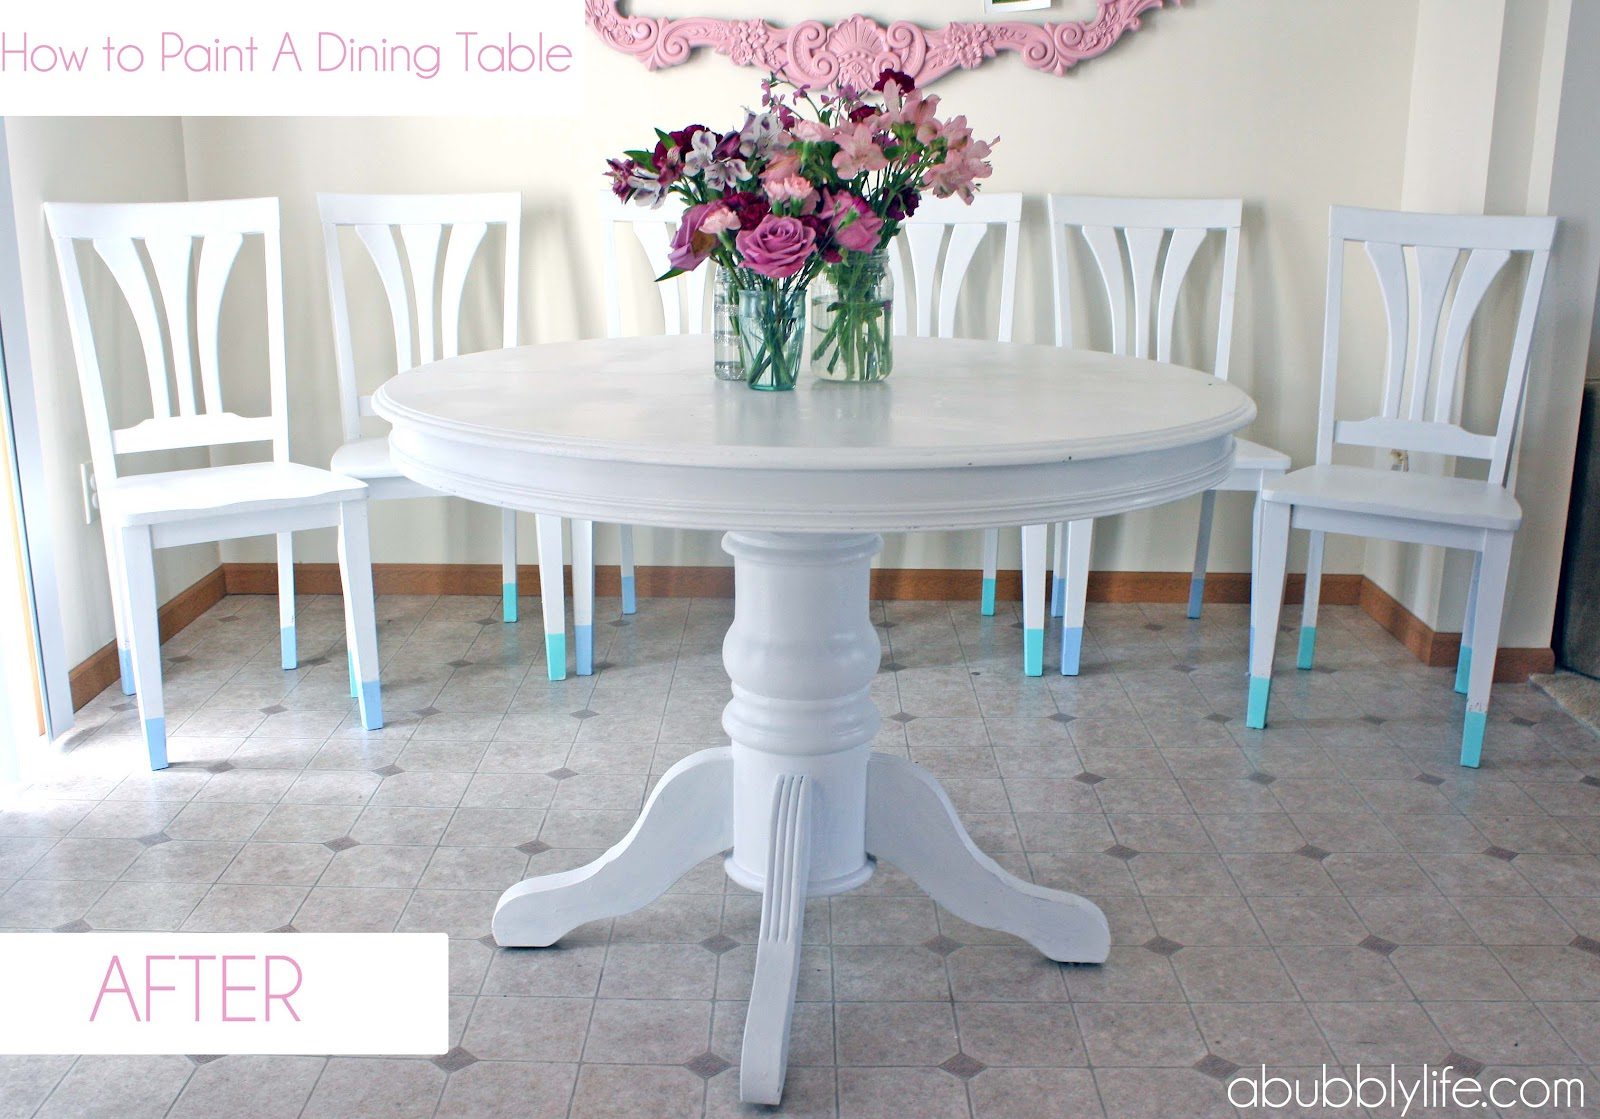 Table With Chairs Childrens Bouncy Chair A Bubbly Lifehow To Paint Dining Room Makeover July 11 2012